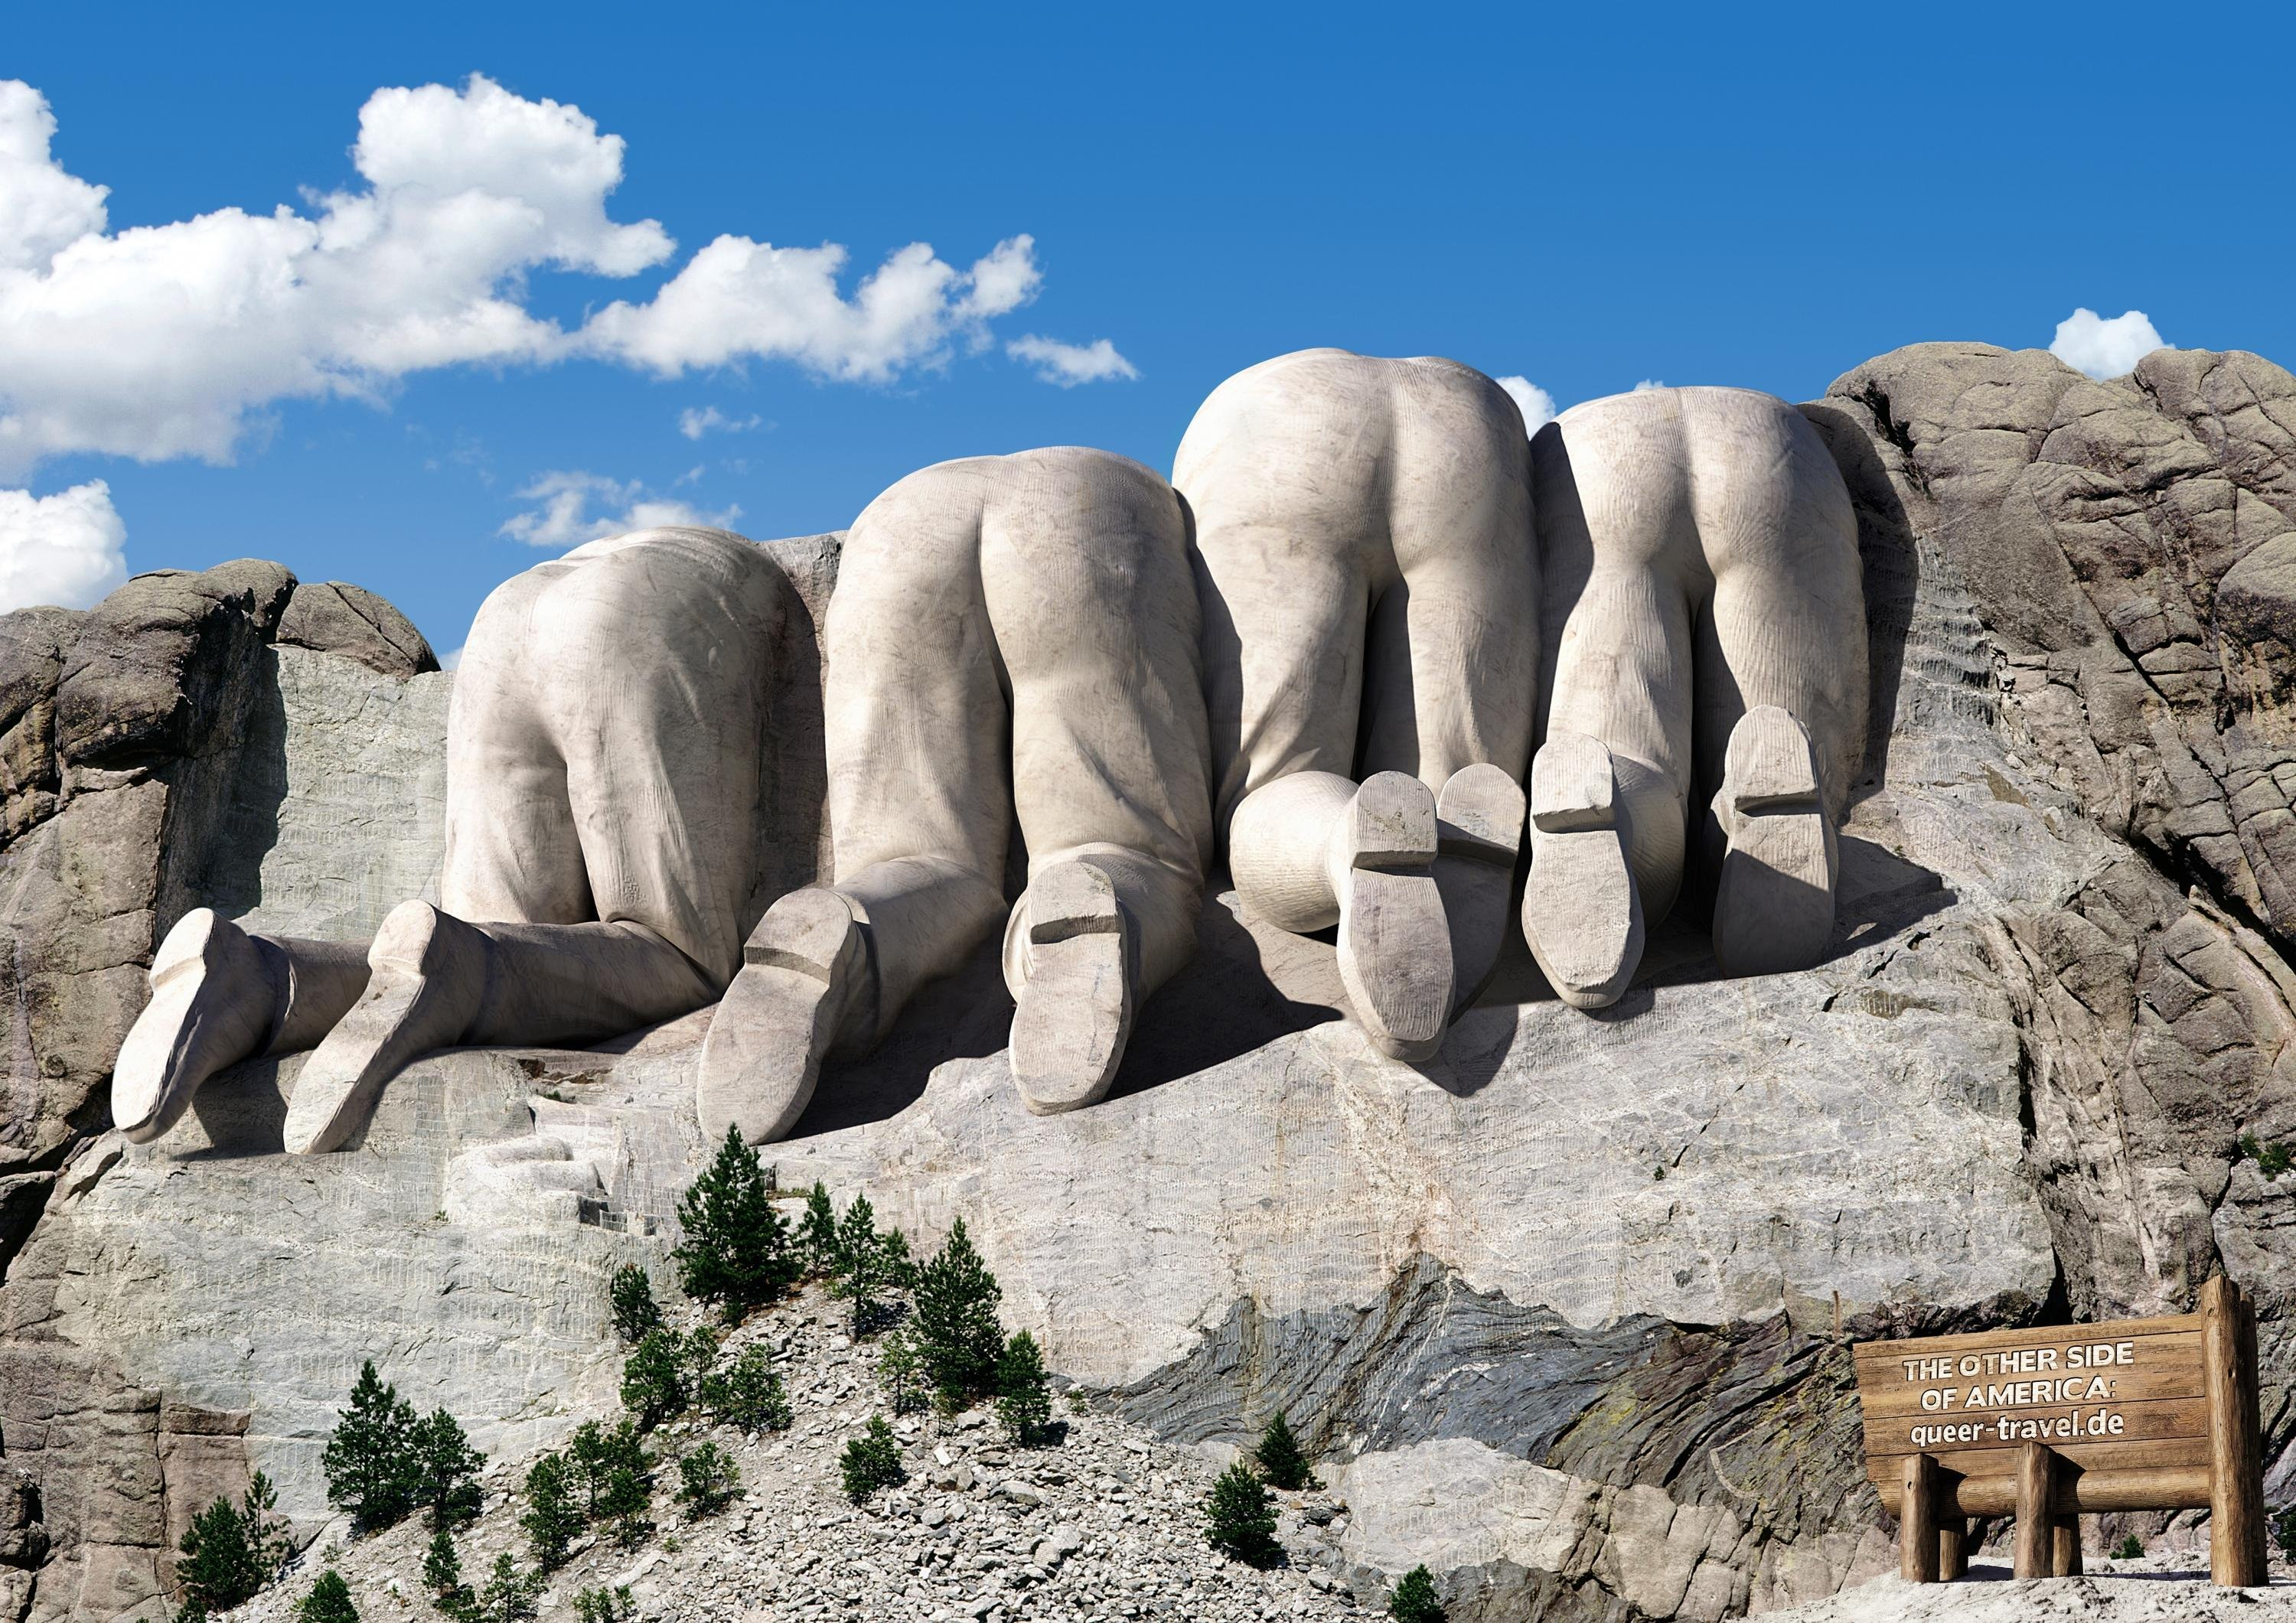 Queer travelde gay lesbian online travel agency mount rushmore from behind original 90212